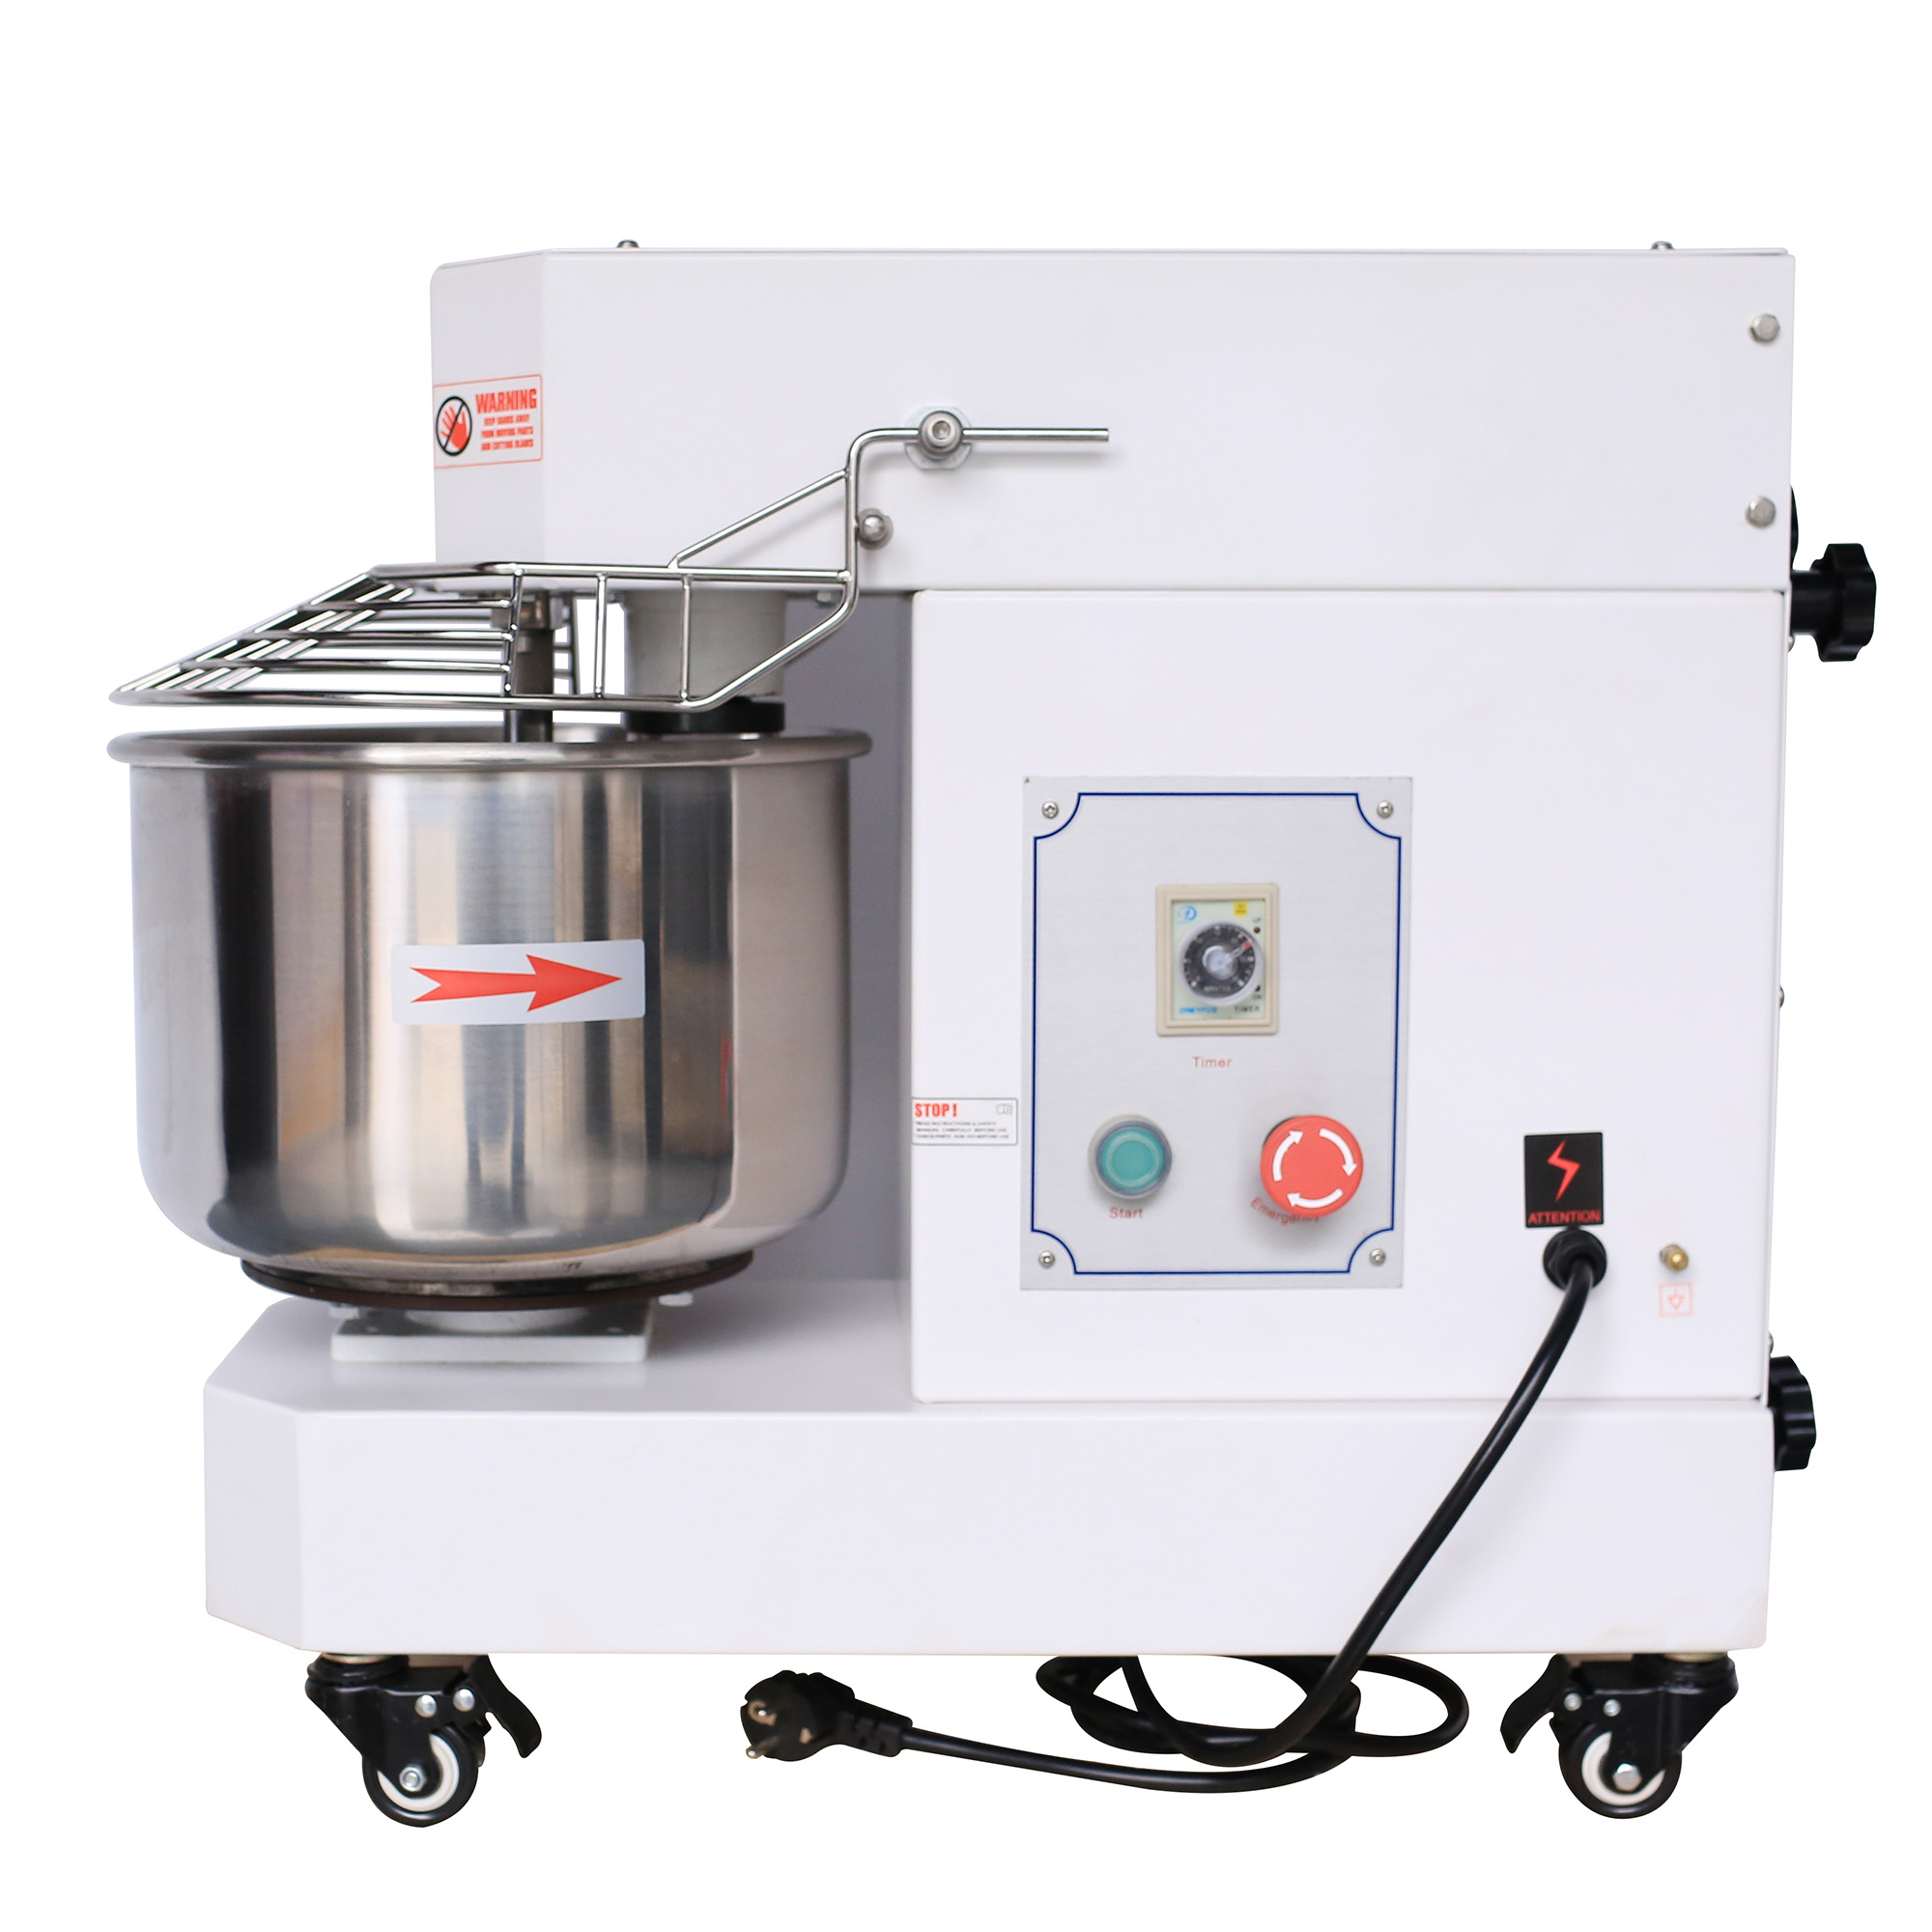 Hakka Commercial Dough Mixers 10 Quart Stainless Steel Spiral Mixers (DN10)